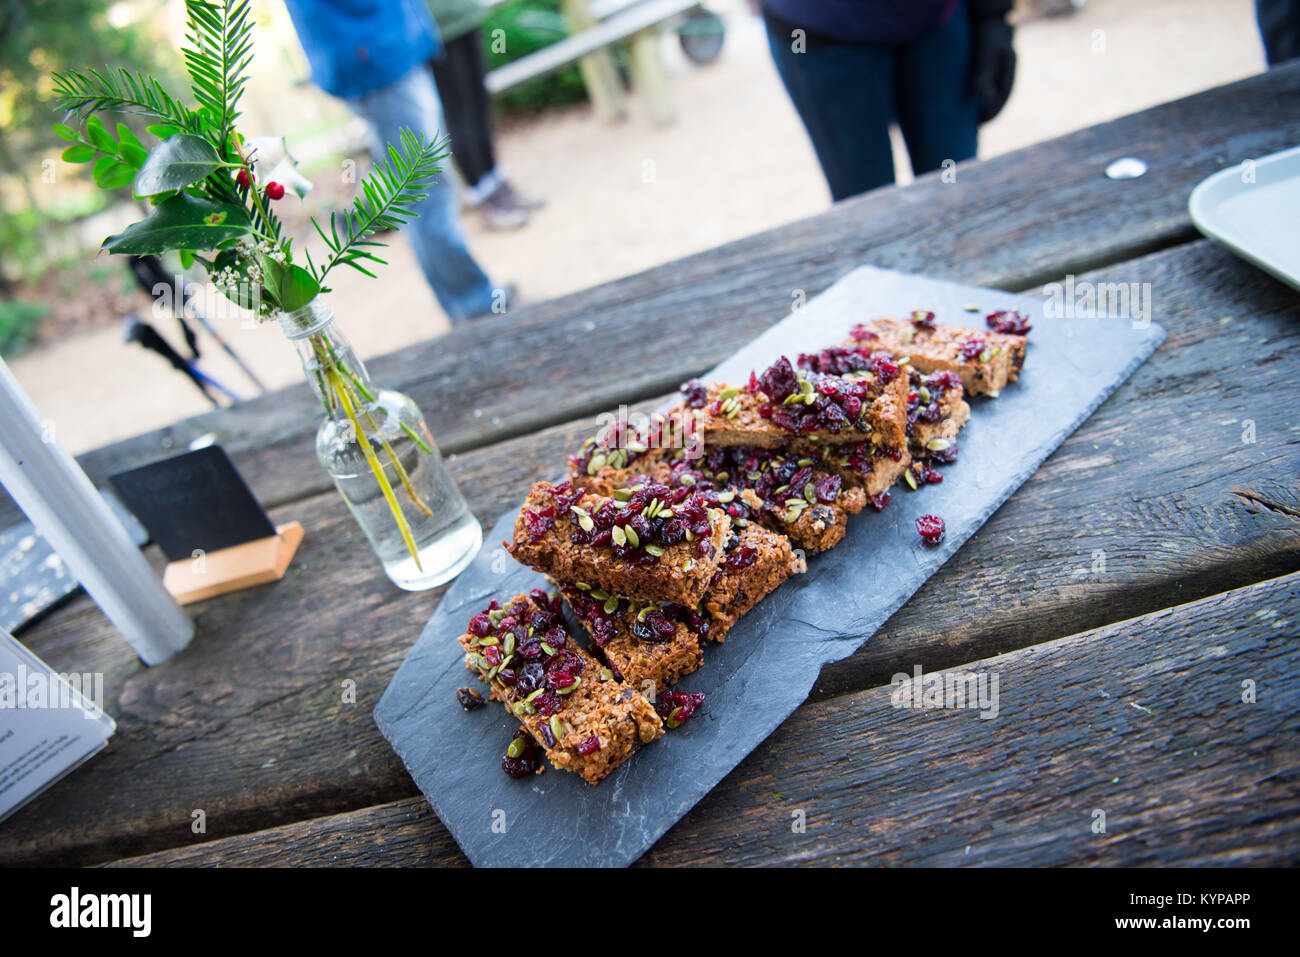 Piles of healthy homemade oat flapjack served on a slate board on a picnic bench for National Trust walkers on a - Stock Image